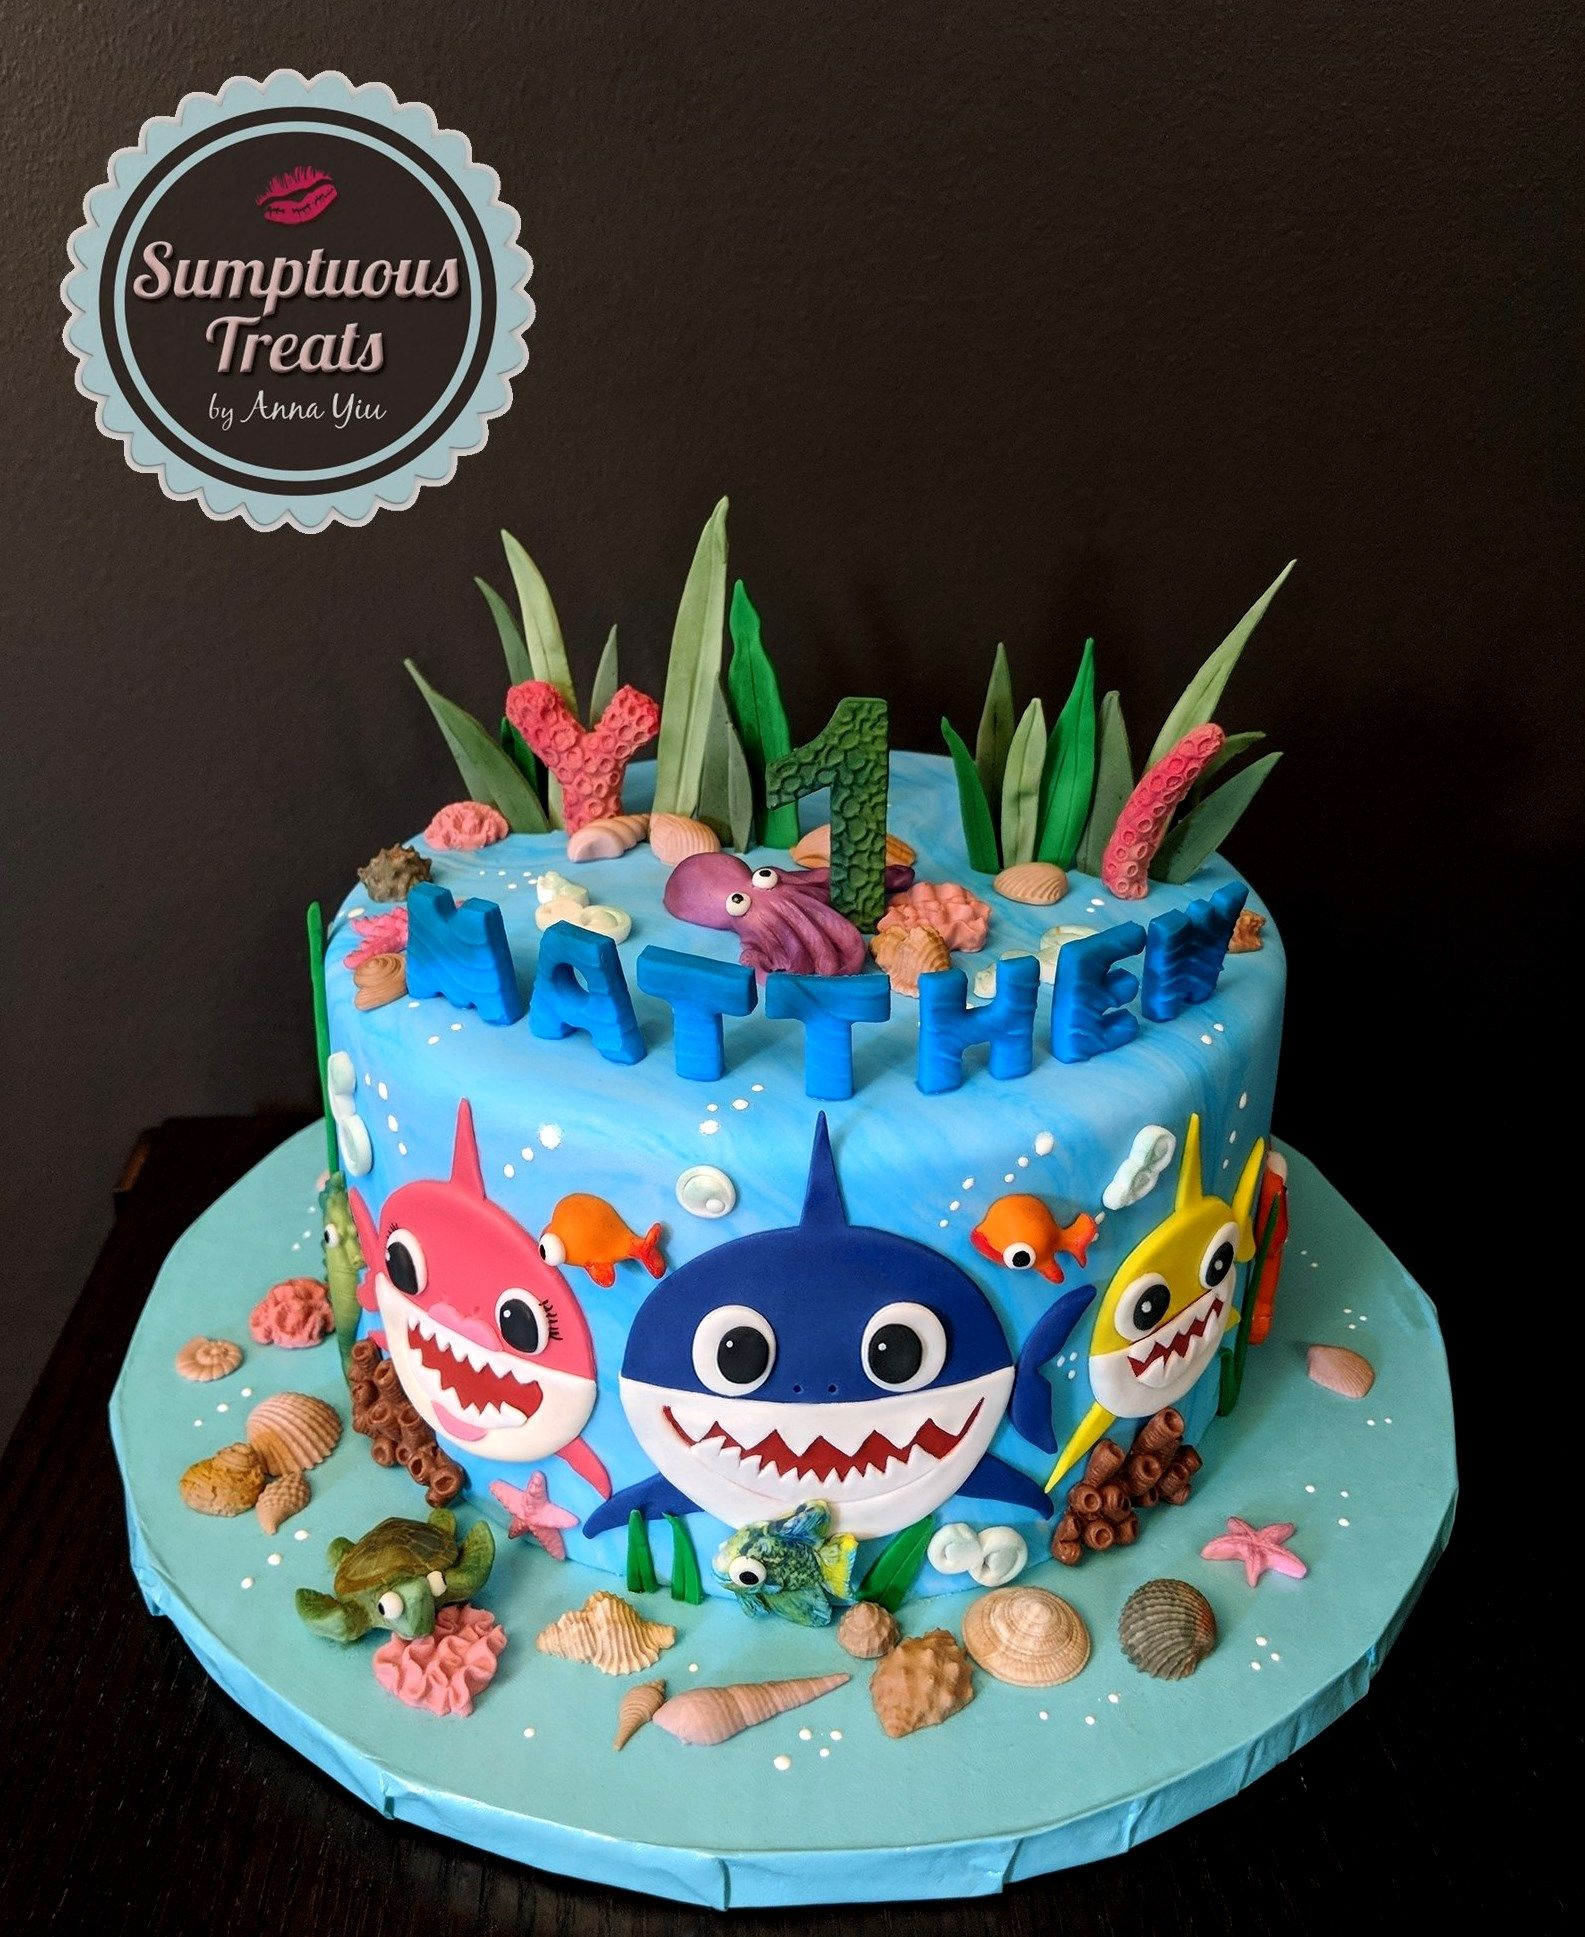 Pink Fong Baby Shark 1st Birthday Cake Custom Made To Order Cakes Edible Art Sumptuoustreats